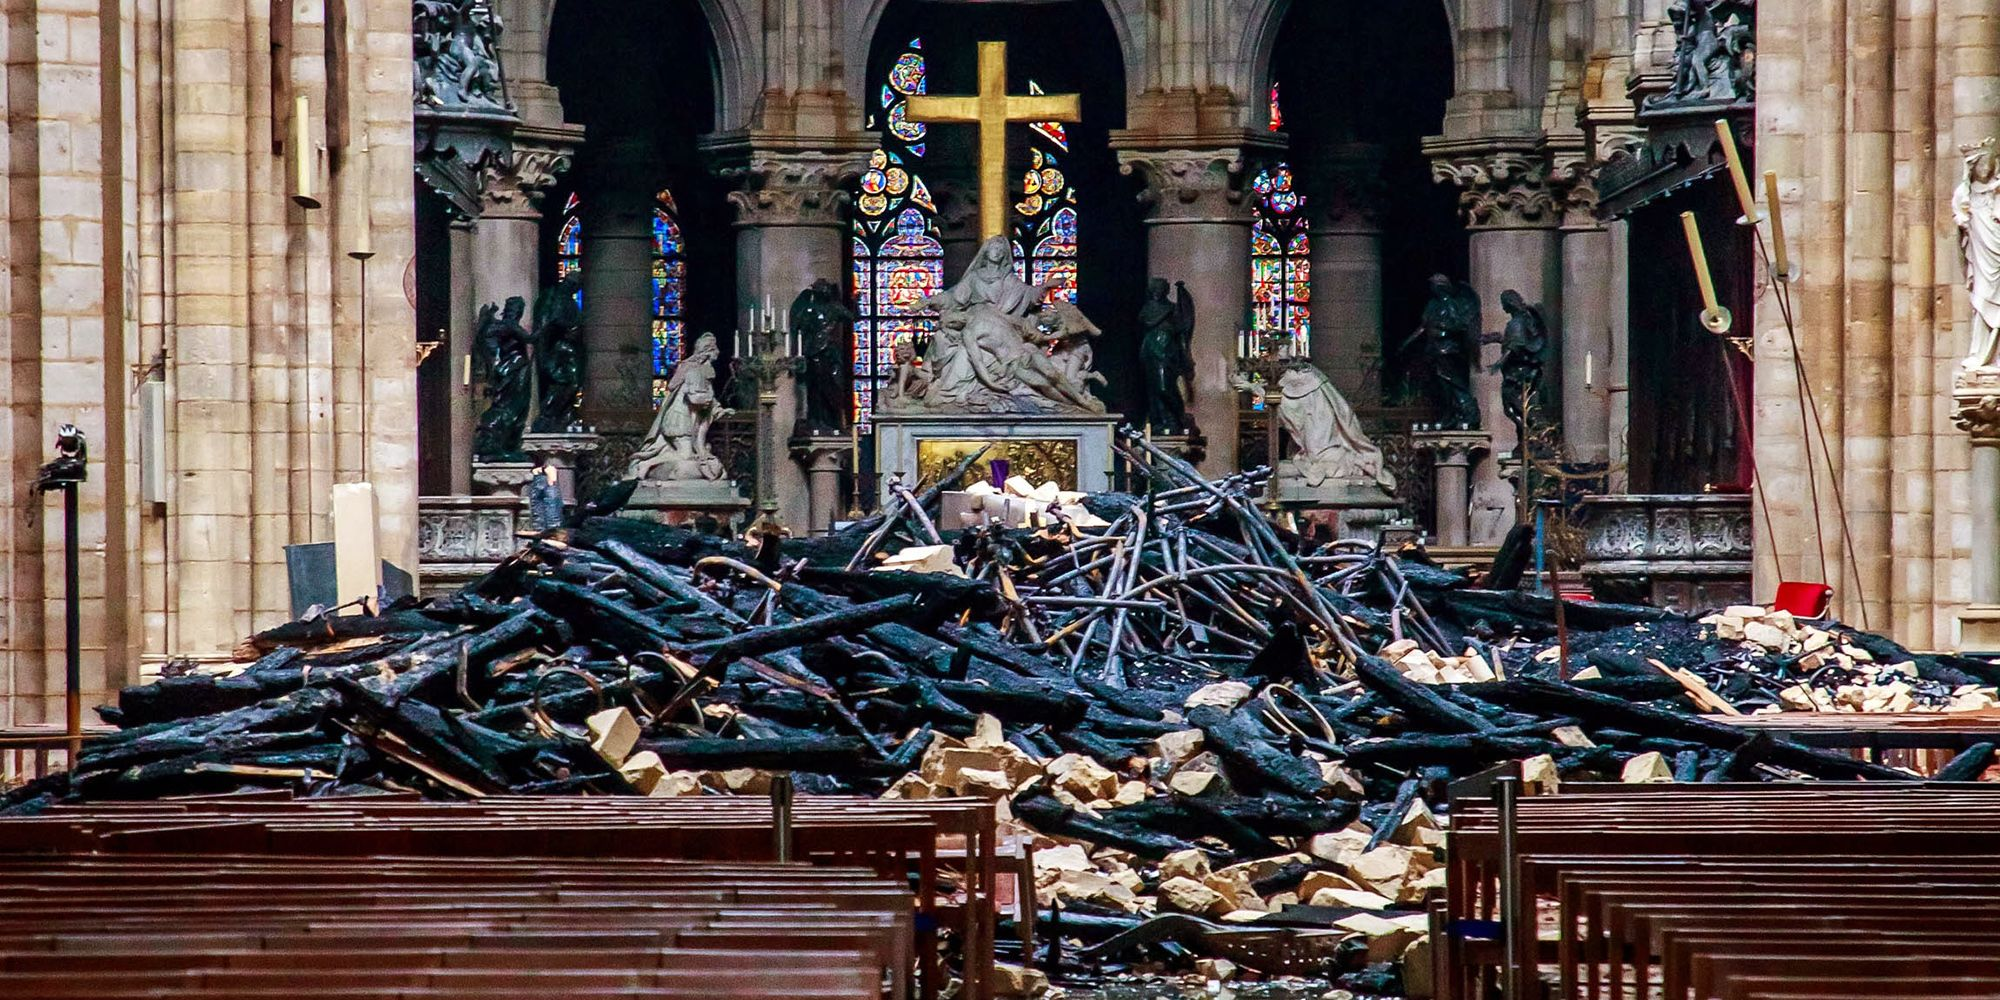 French President Emmanuel Macron has vowed to rebuild the historic cathedral after a devastating fire ripped through it.